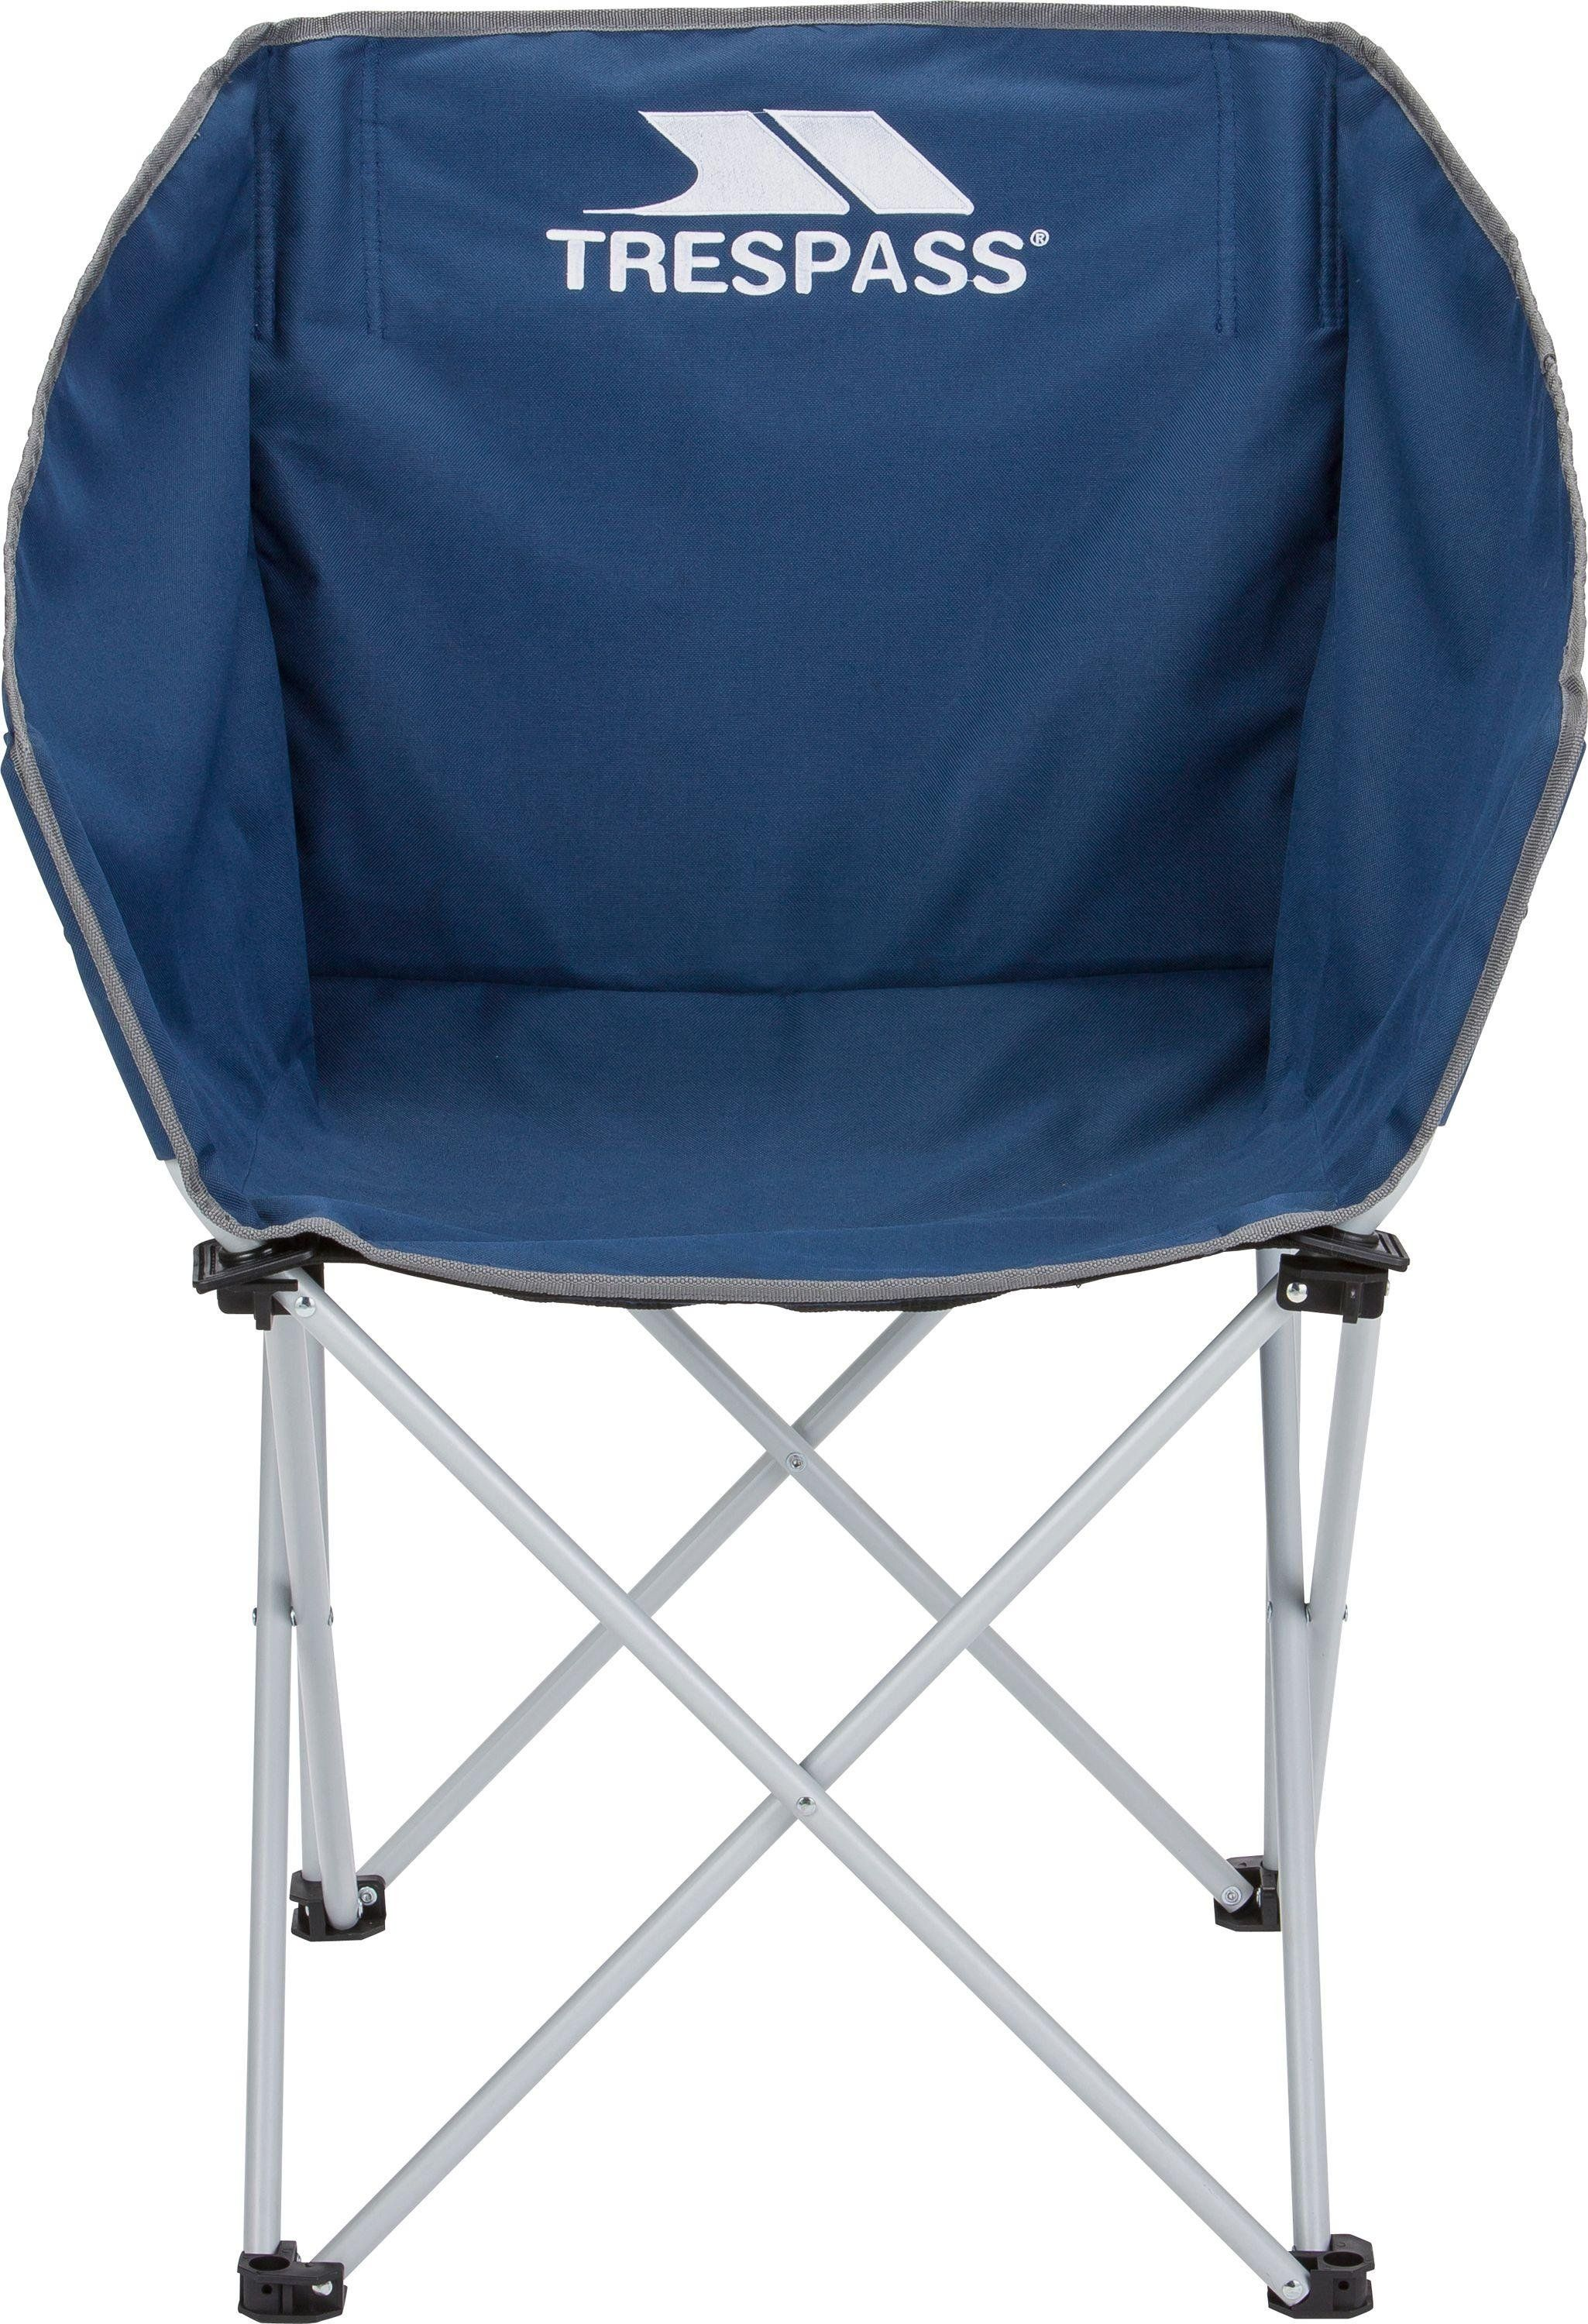 Pin by All Sewn on Man Stuff Bucket chairs, Camping